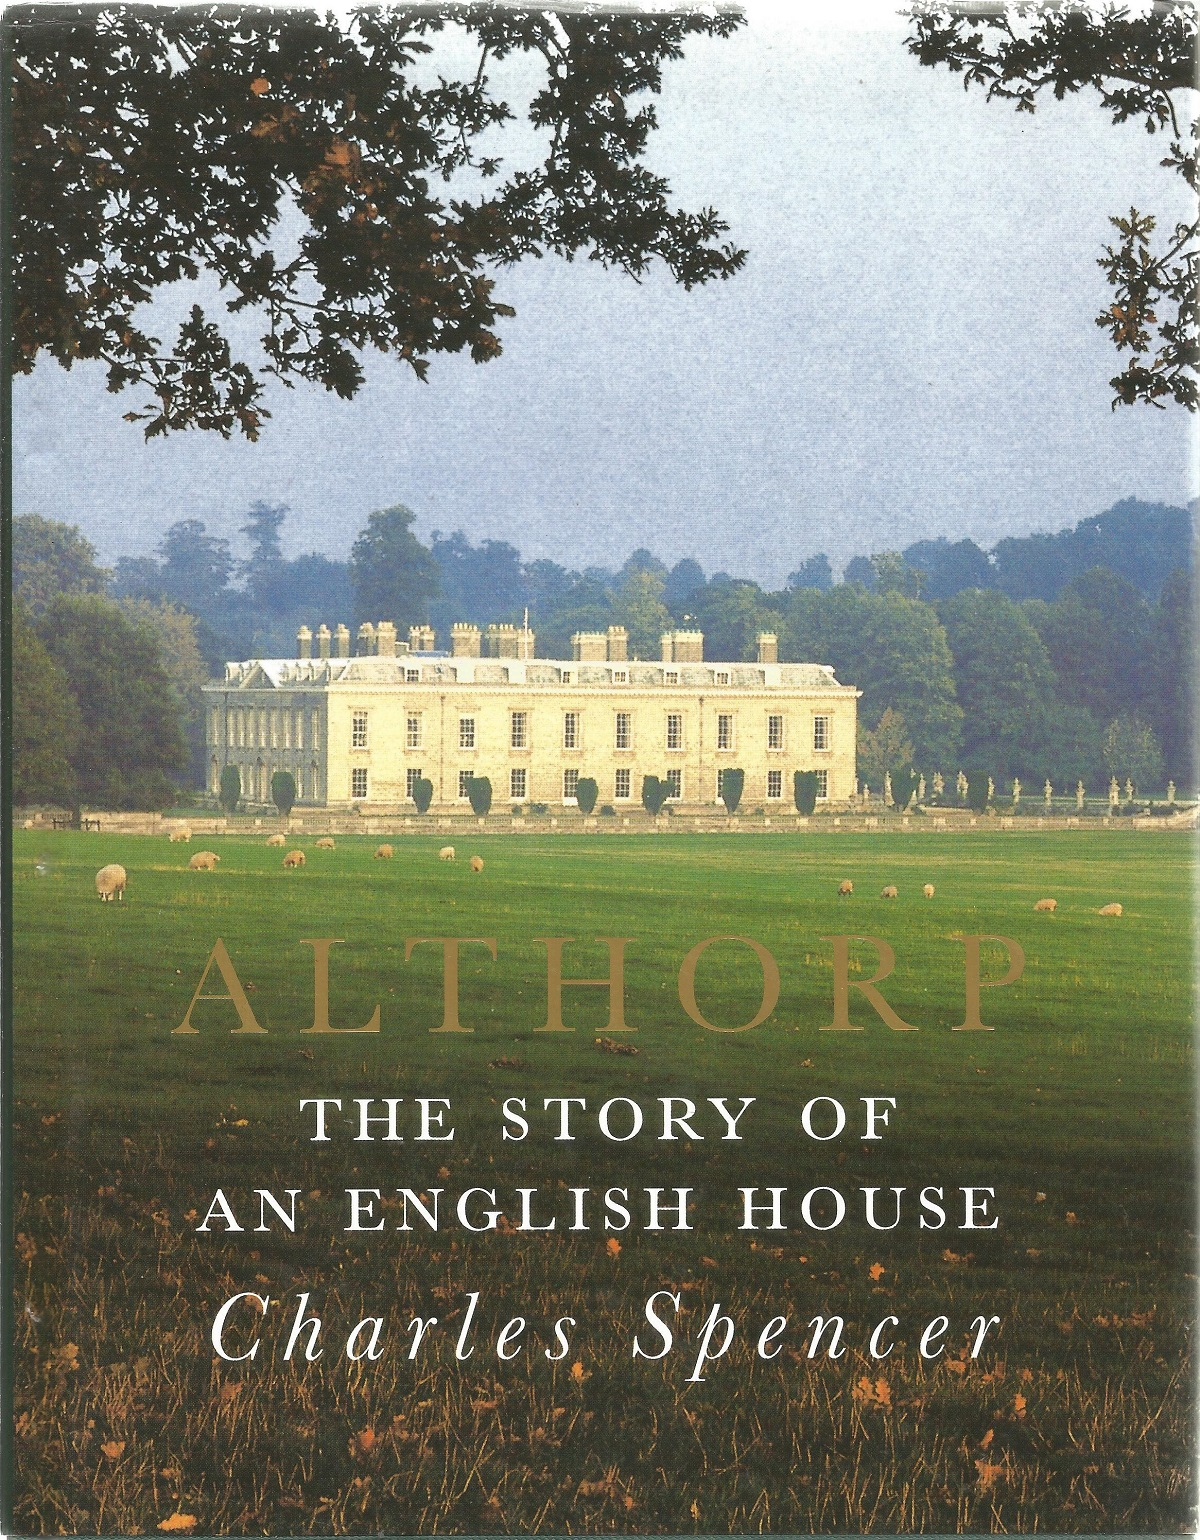 Charles Spencer Hardback Book The Story of an English House signed by the Author on the Title Page